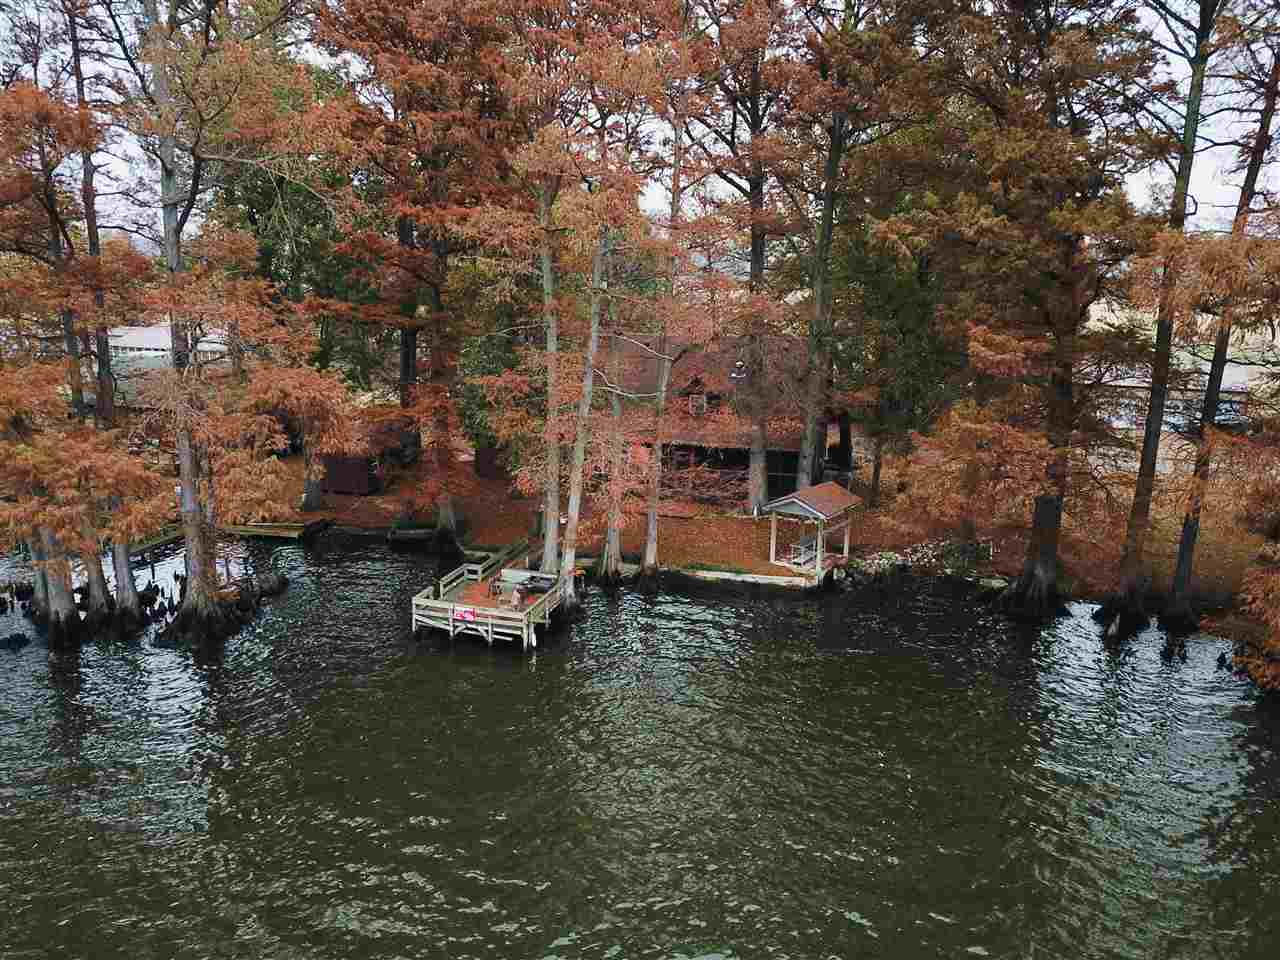 1042 Lake Dr,Hornbeak,Tennessee 38232,3 Bedrooms Bedrooms,2 BathroomsBathrooms,Residential,1042 Lake Dr,184120